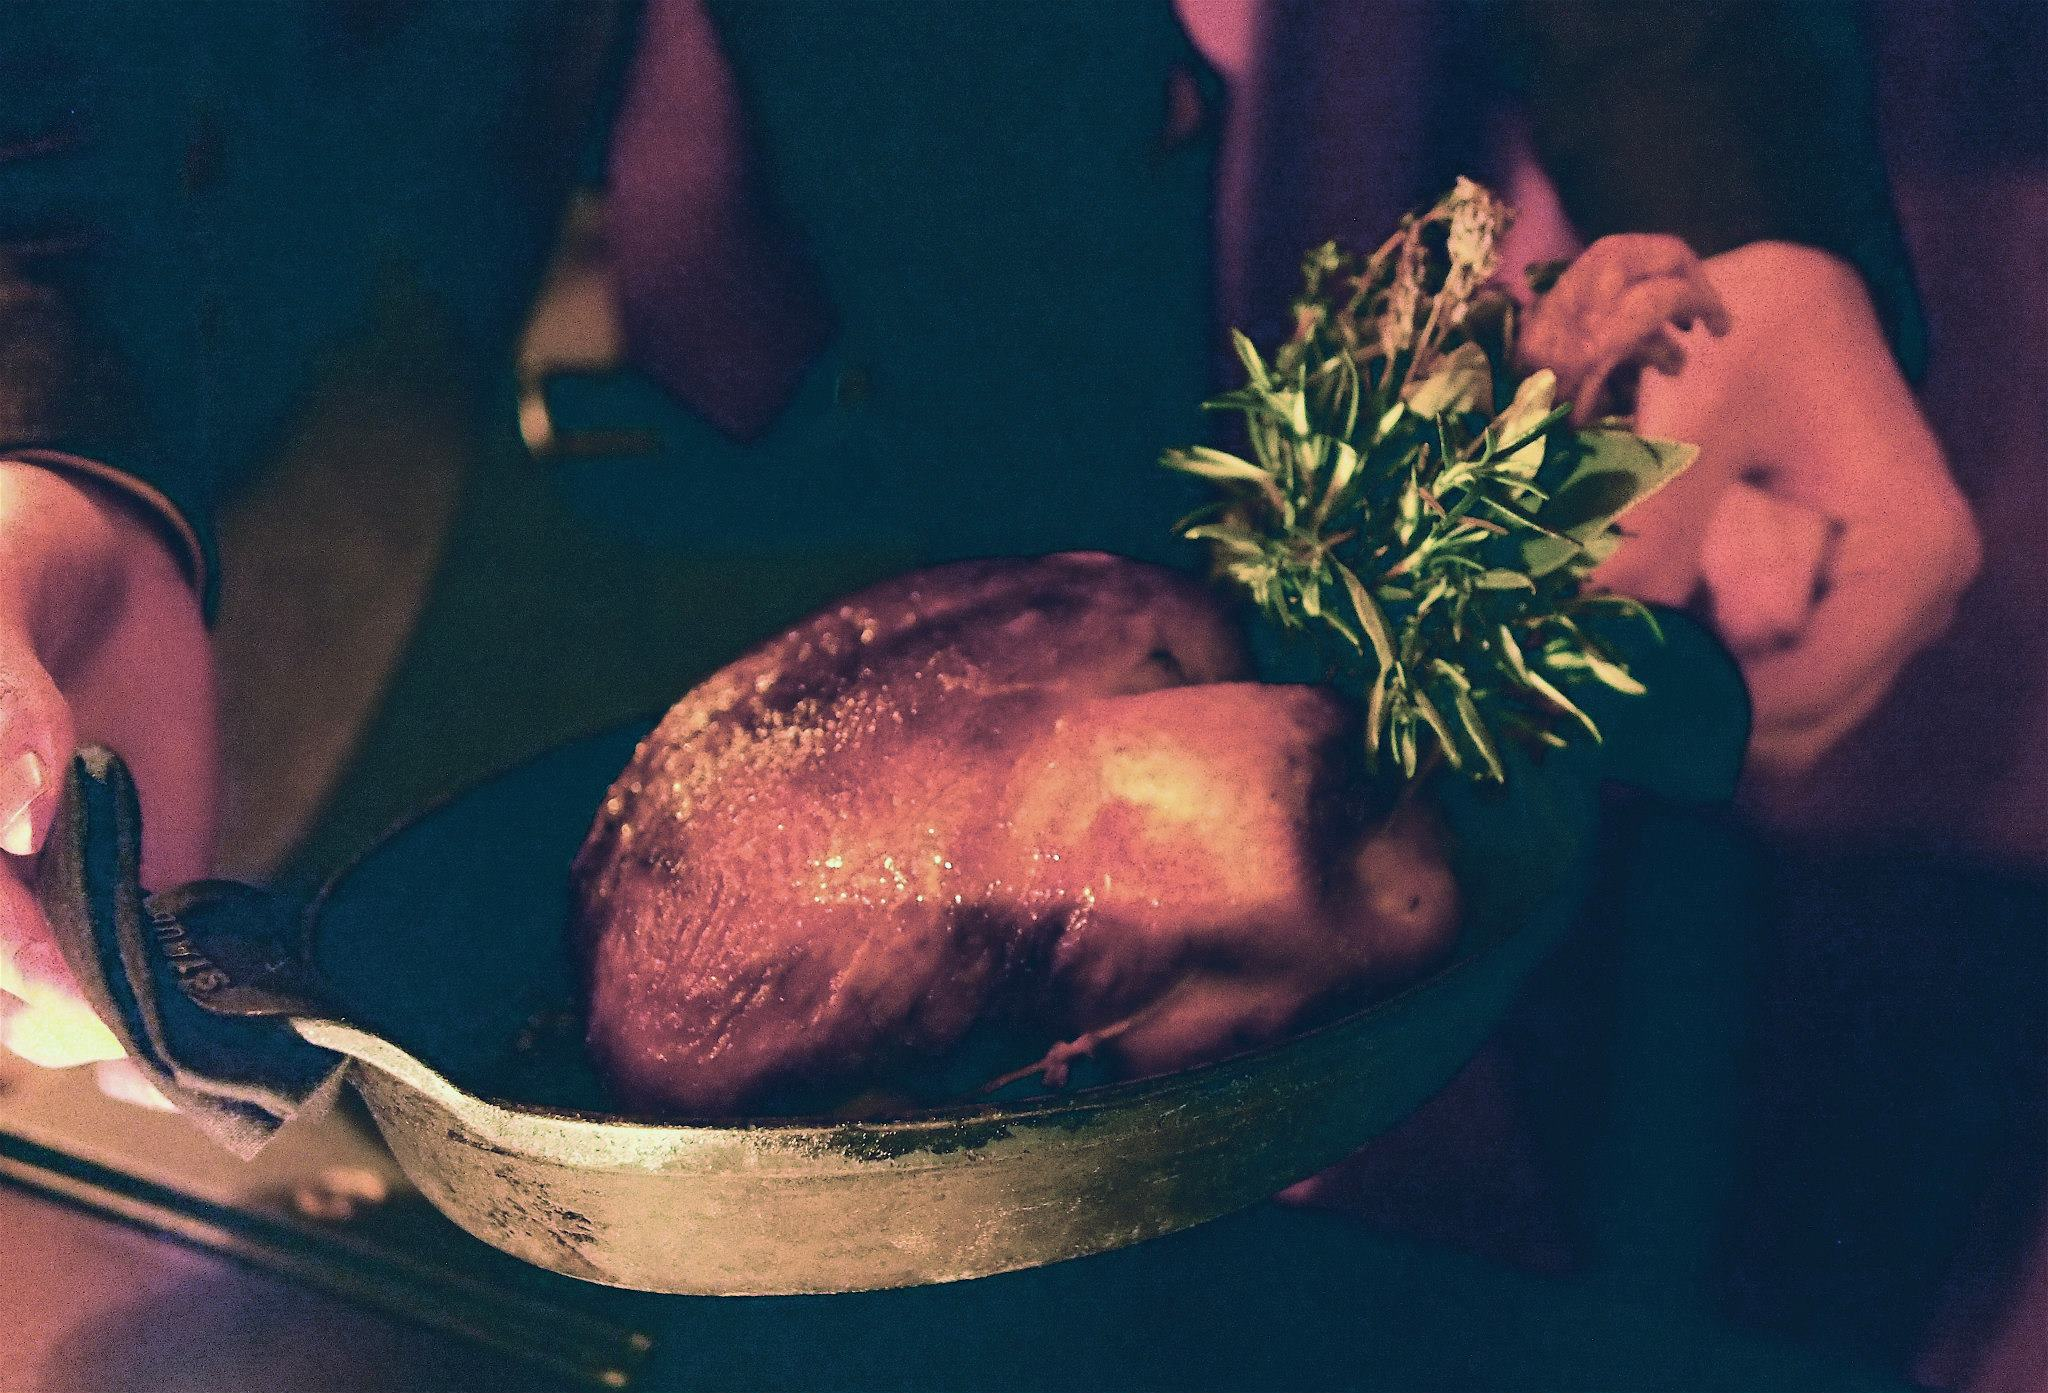 Whole roasted chicken stuffed with foie gras, black truffle and brioche